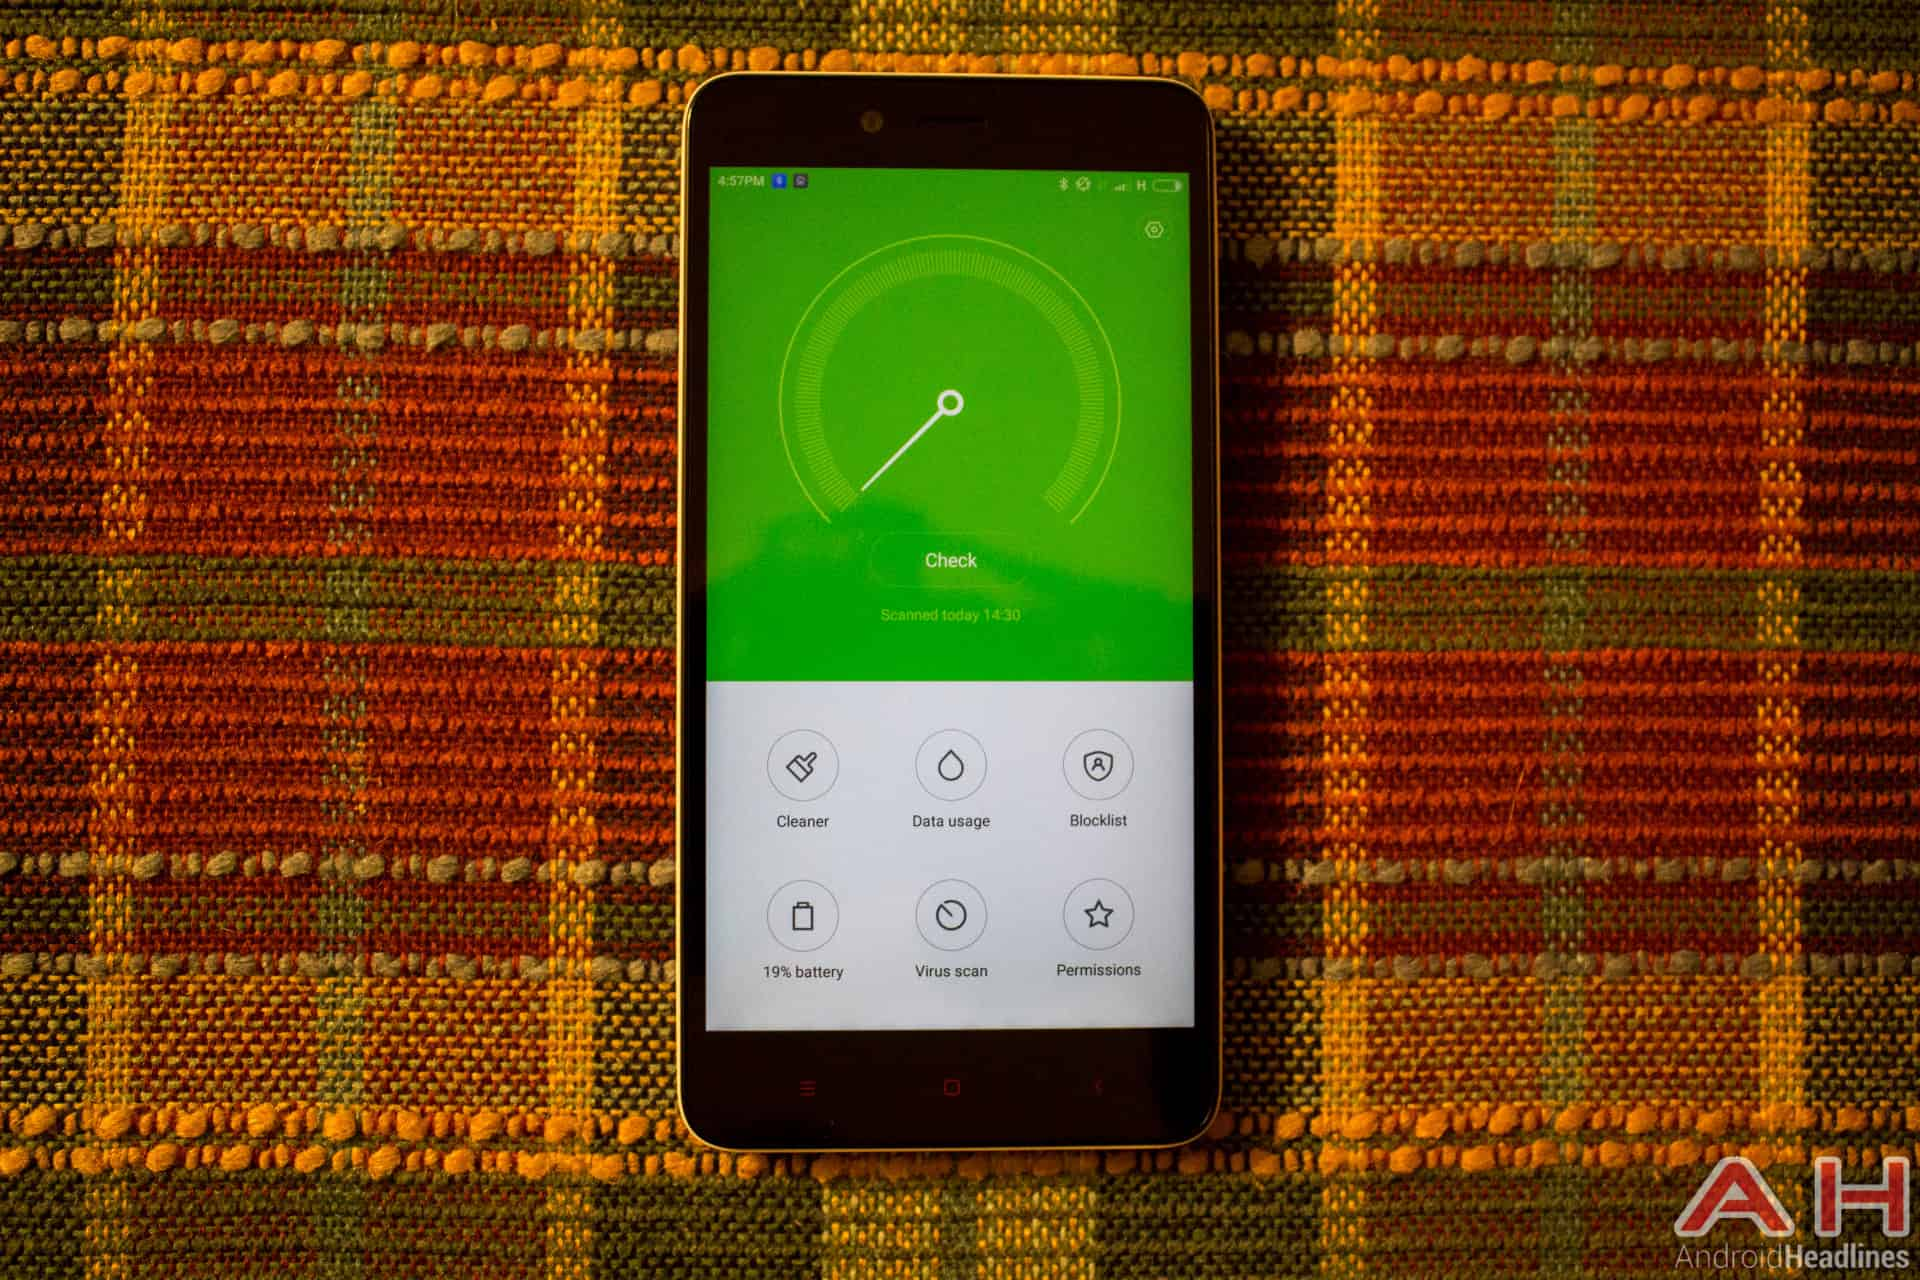 Xiaomi-Redmi-Note-2-AH-security